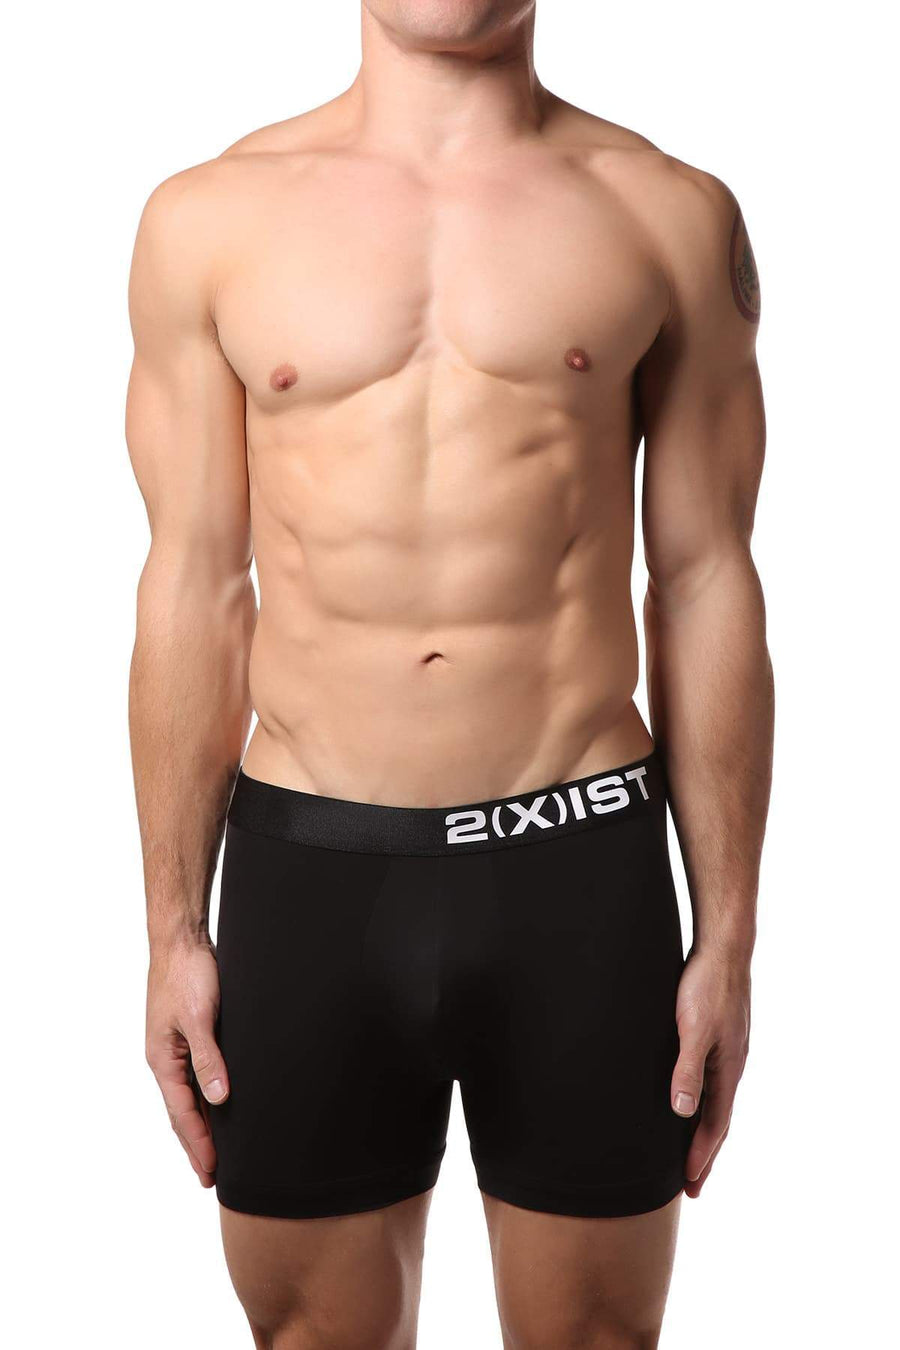 Boxer Briefs - 2(X)IST Black Electric Micro Boxer Brief -   jetcube